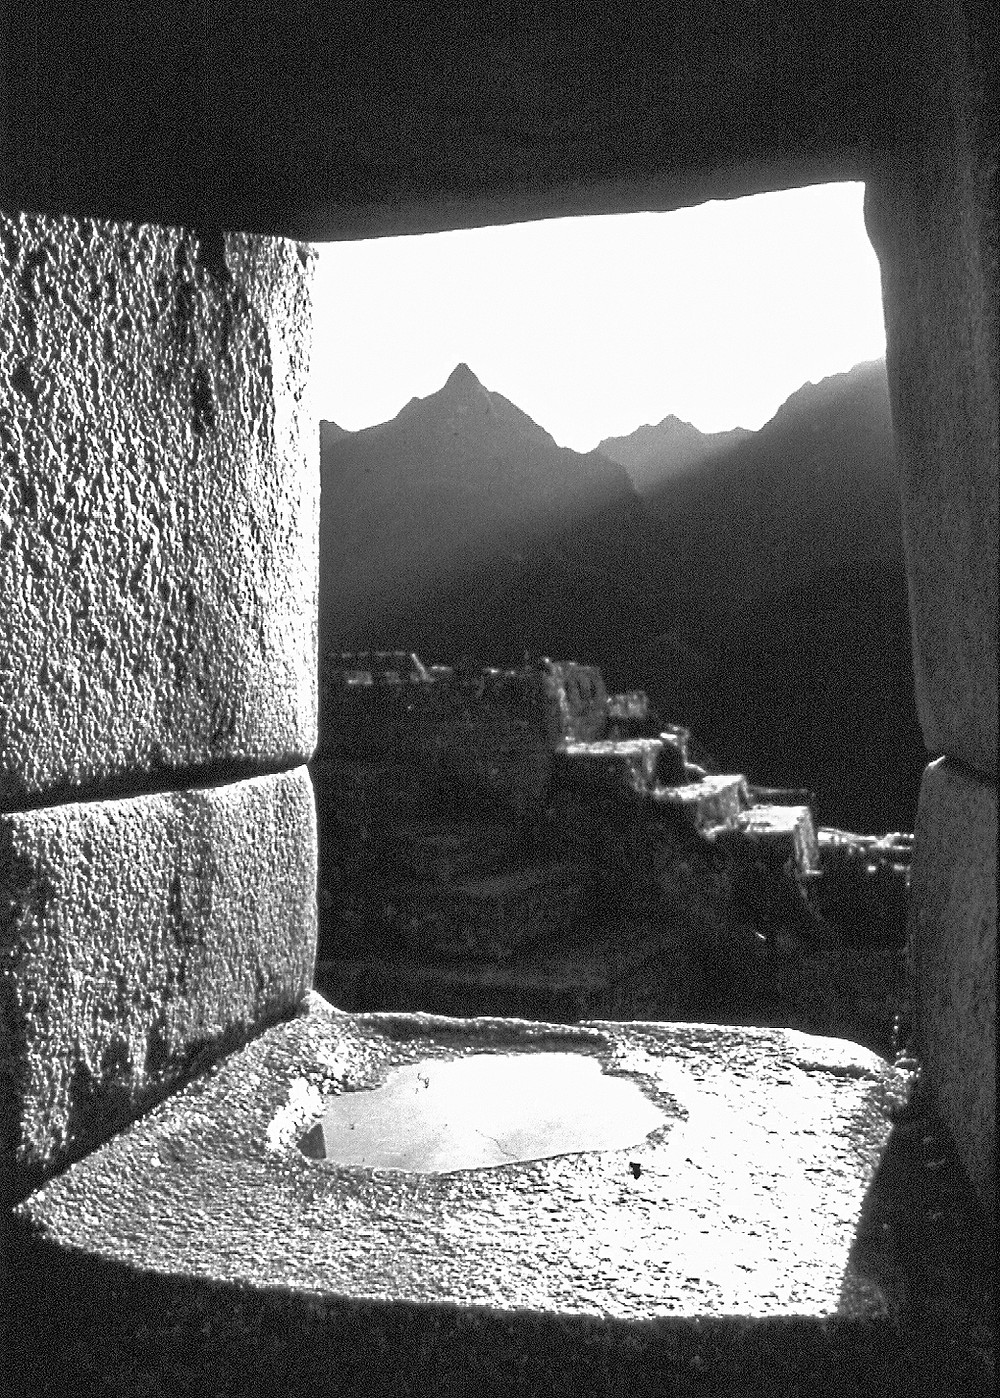 The sacred Apu peak, Yanatin seen from the Temple of  Three windows at Machu Picchu